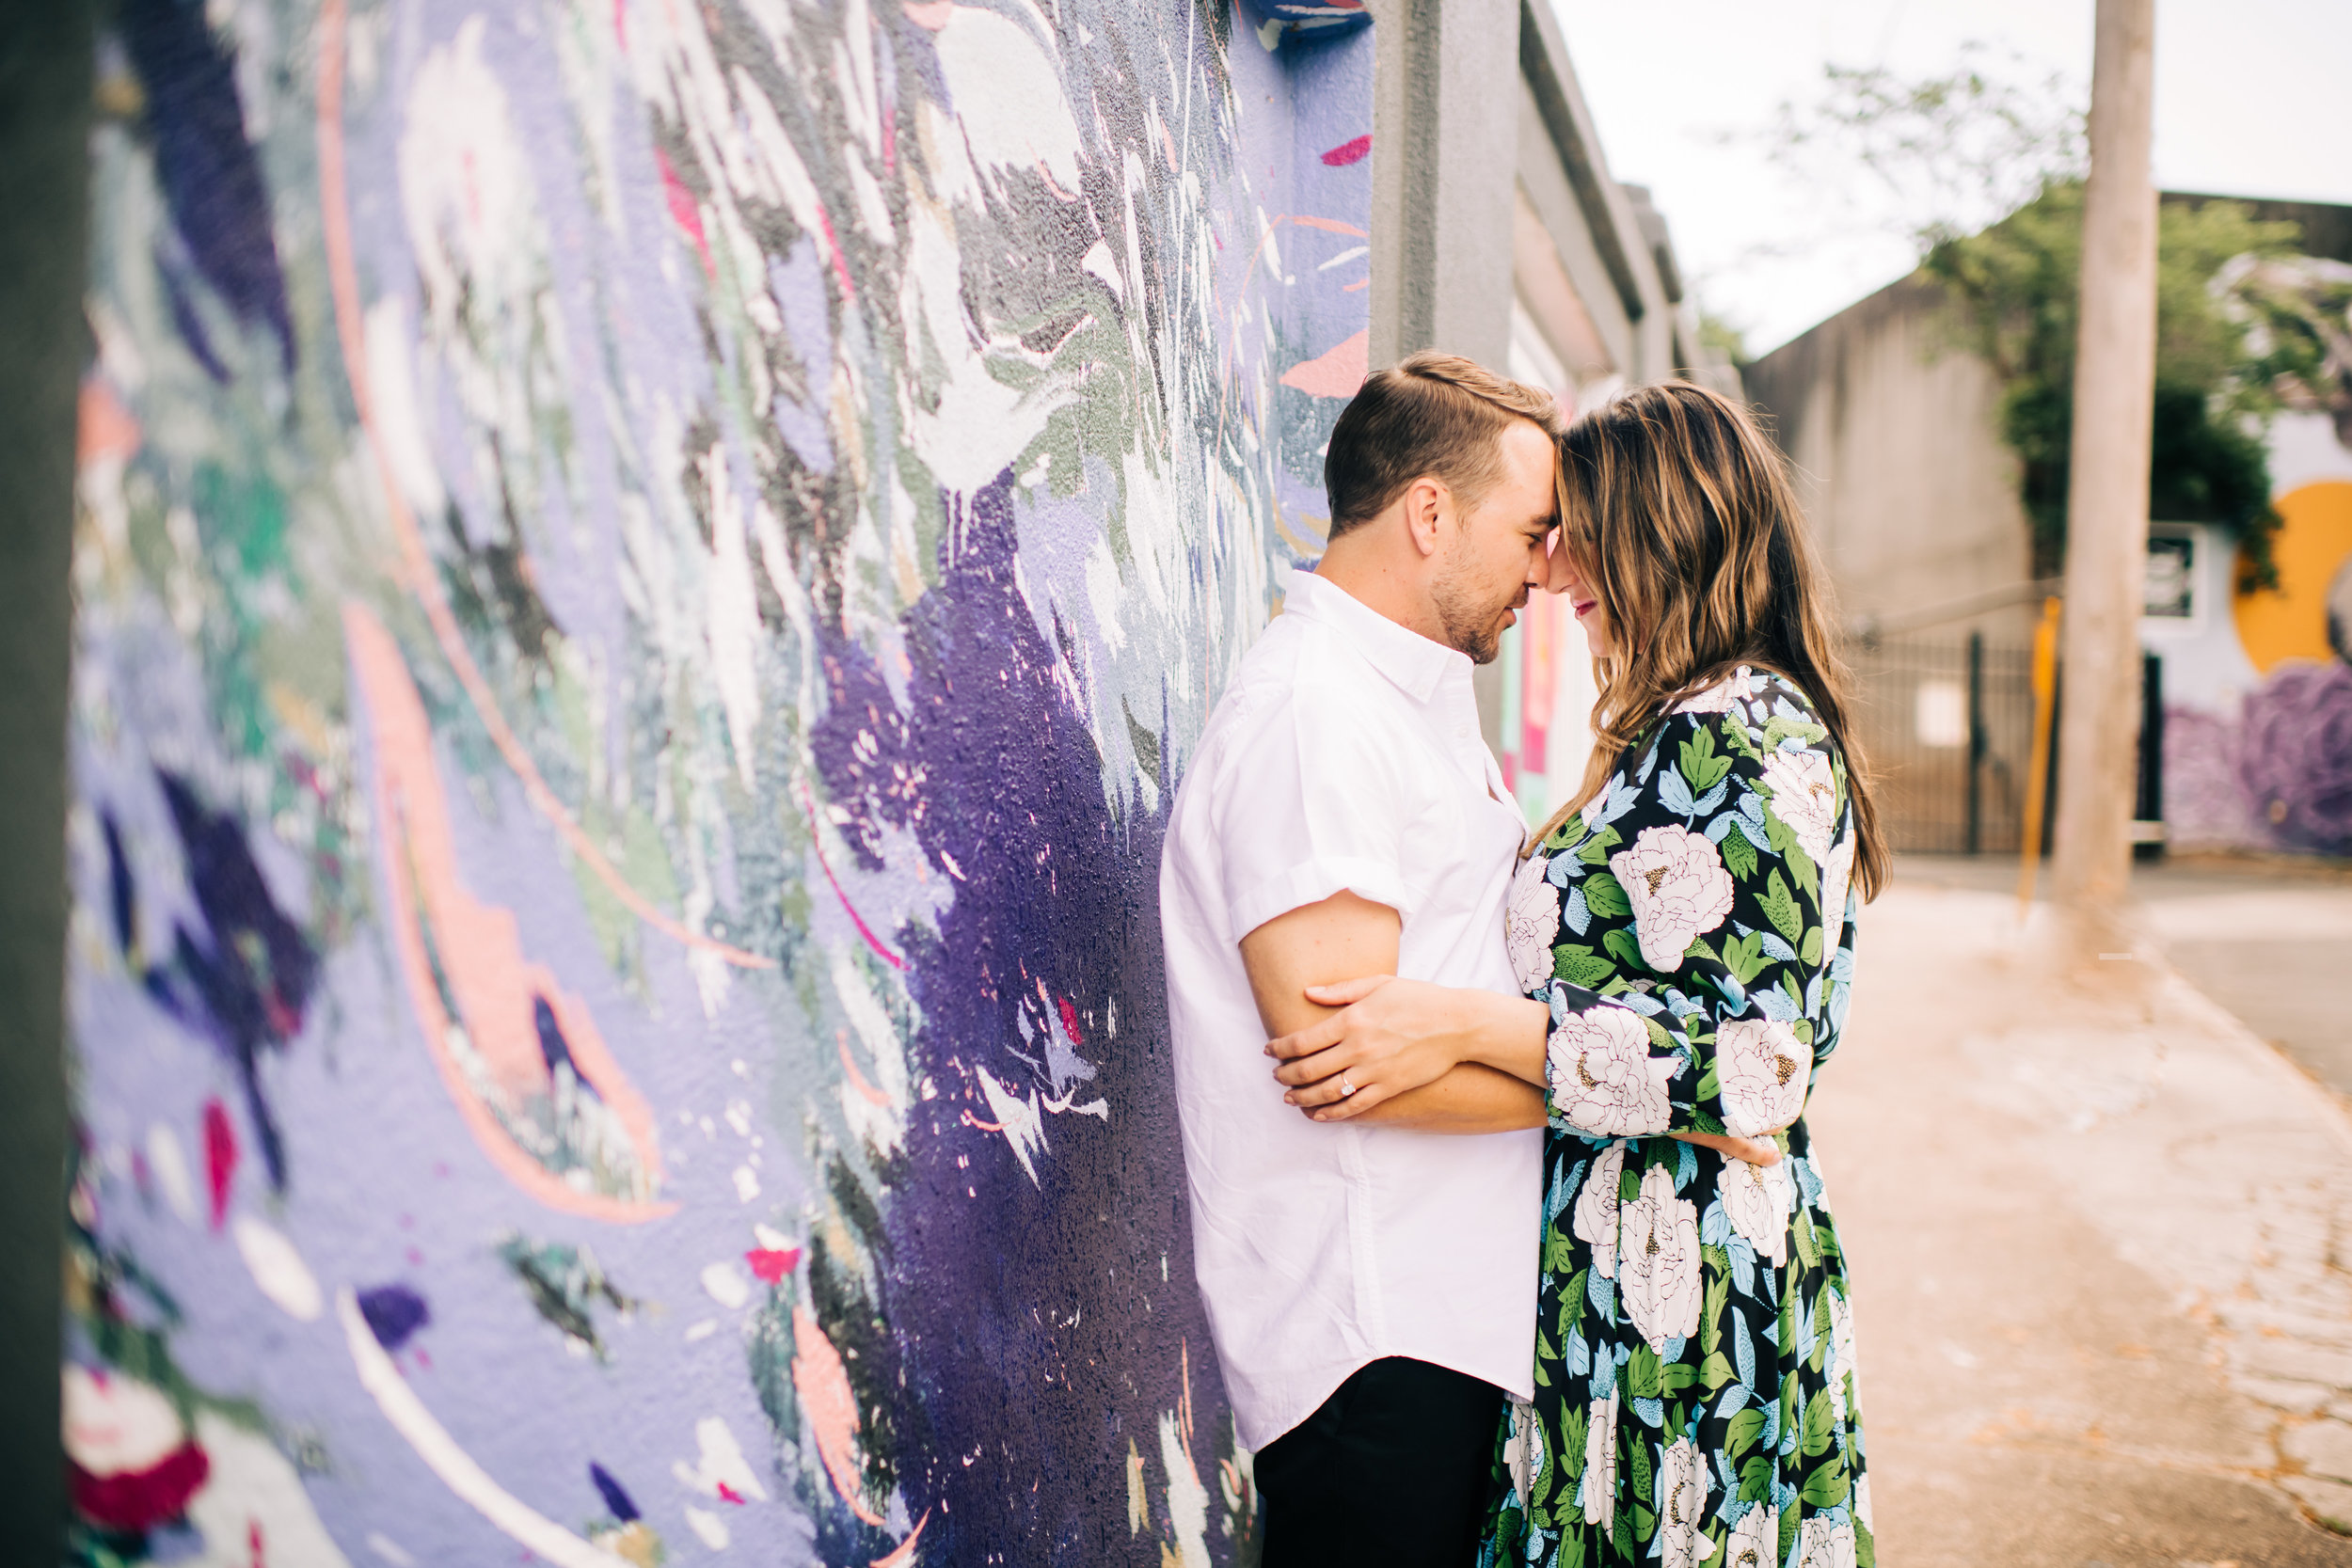 atlanta midtown cabbagetown jackson street bridge oakland san francisco engagement wedding nontraditional fun creative eclectic photographer magic-10.jpg